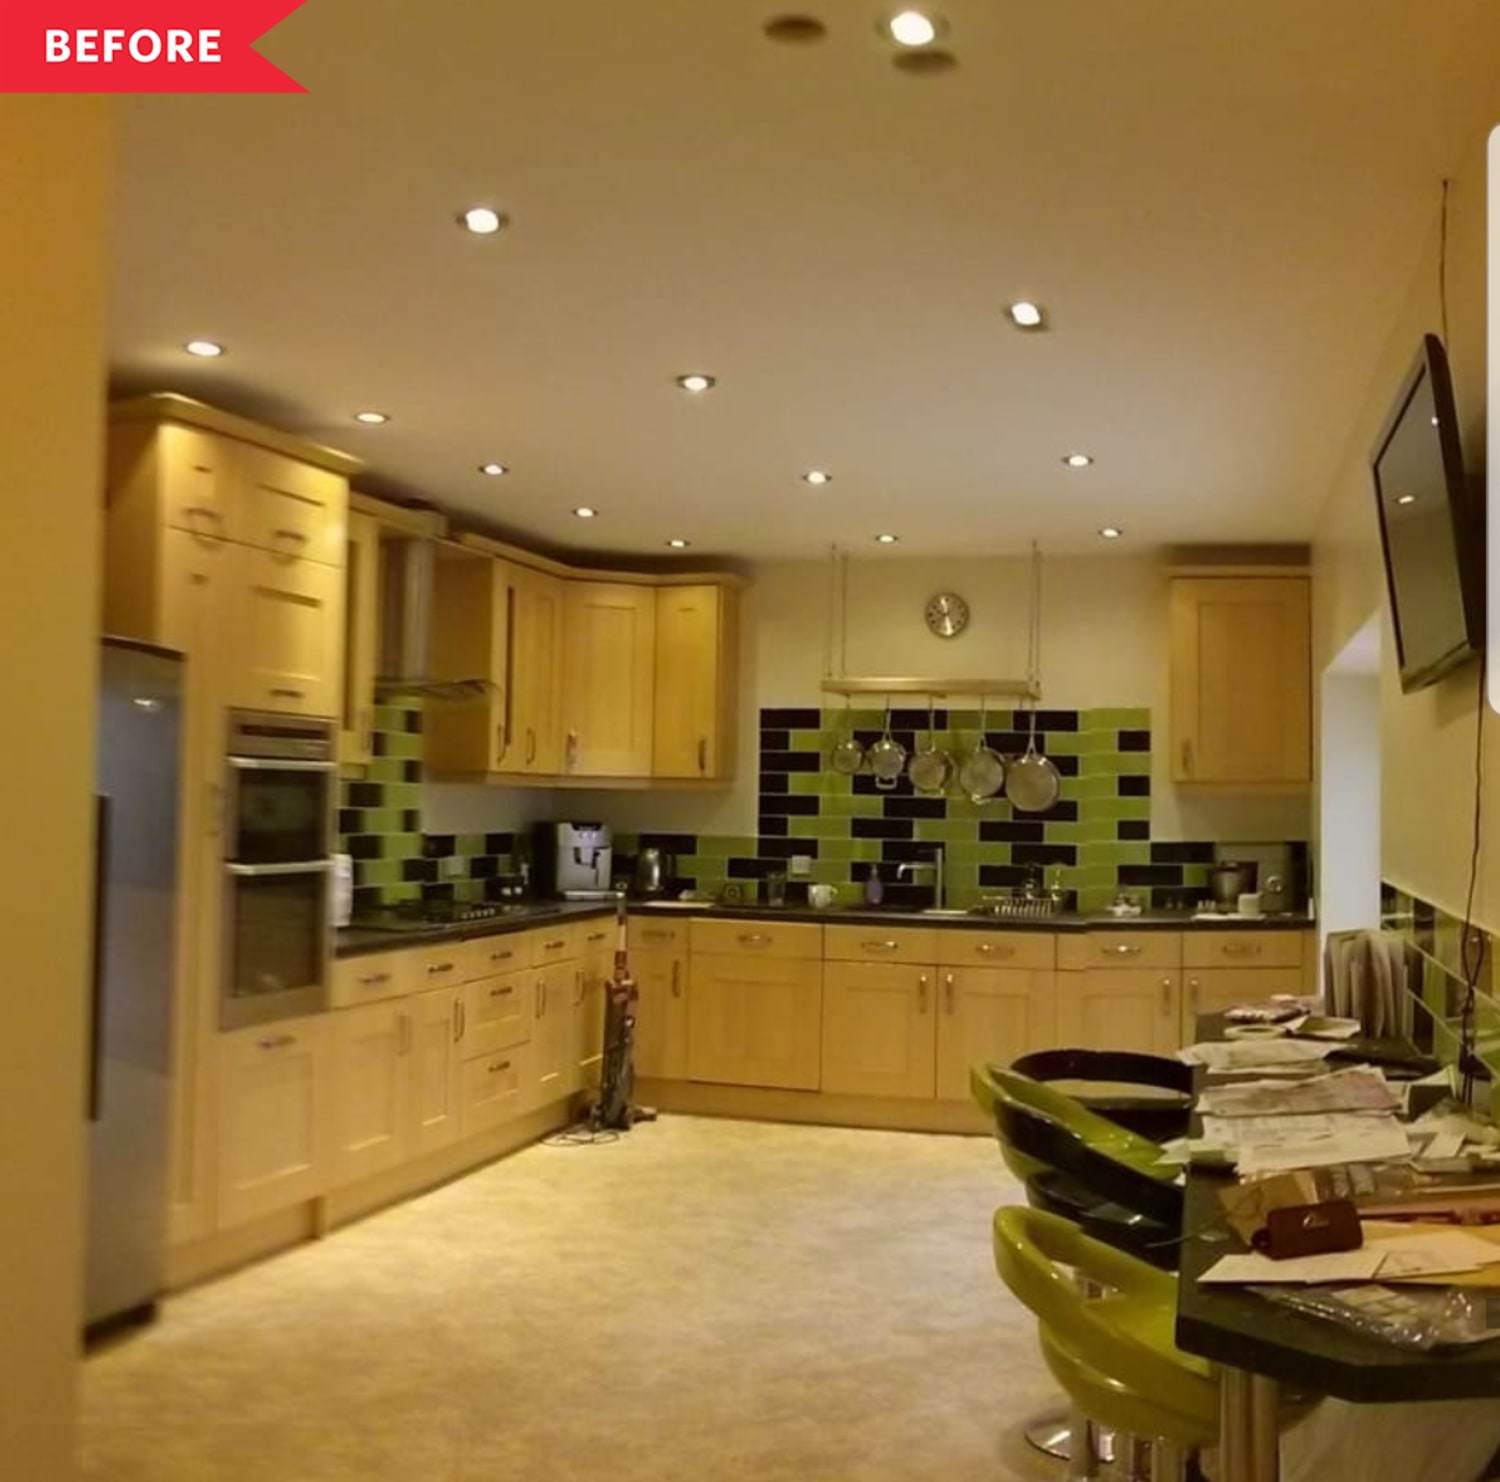 Before & After: A Few Tiny Tweaks Gave This Kitchen a Majorly Happy New Look